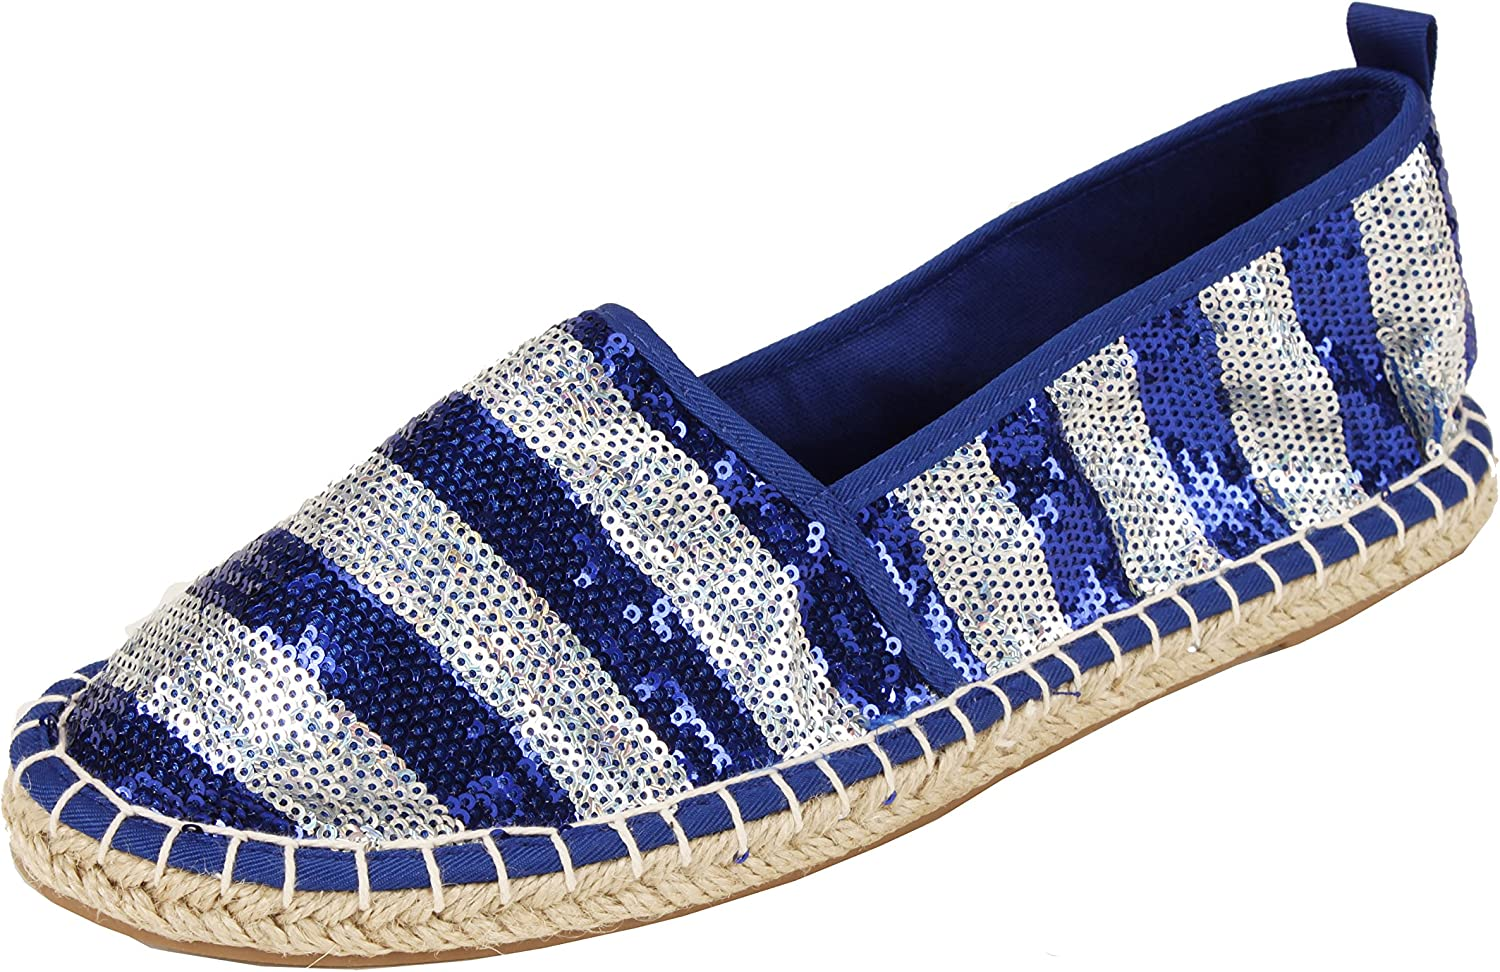 PepStep Women's Sequin Jute Soles Flats Ladies Espadrille Loafer Slip On Dolly Summer Holiday shoes